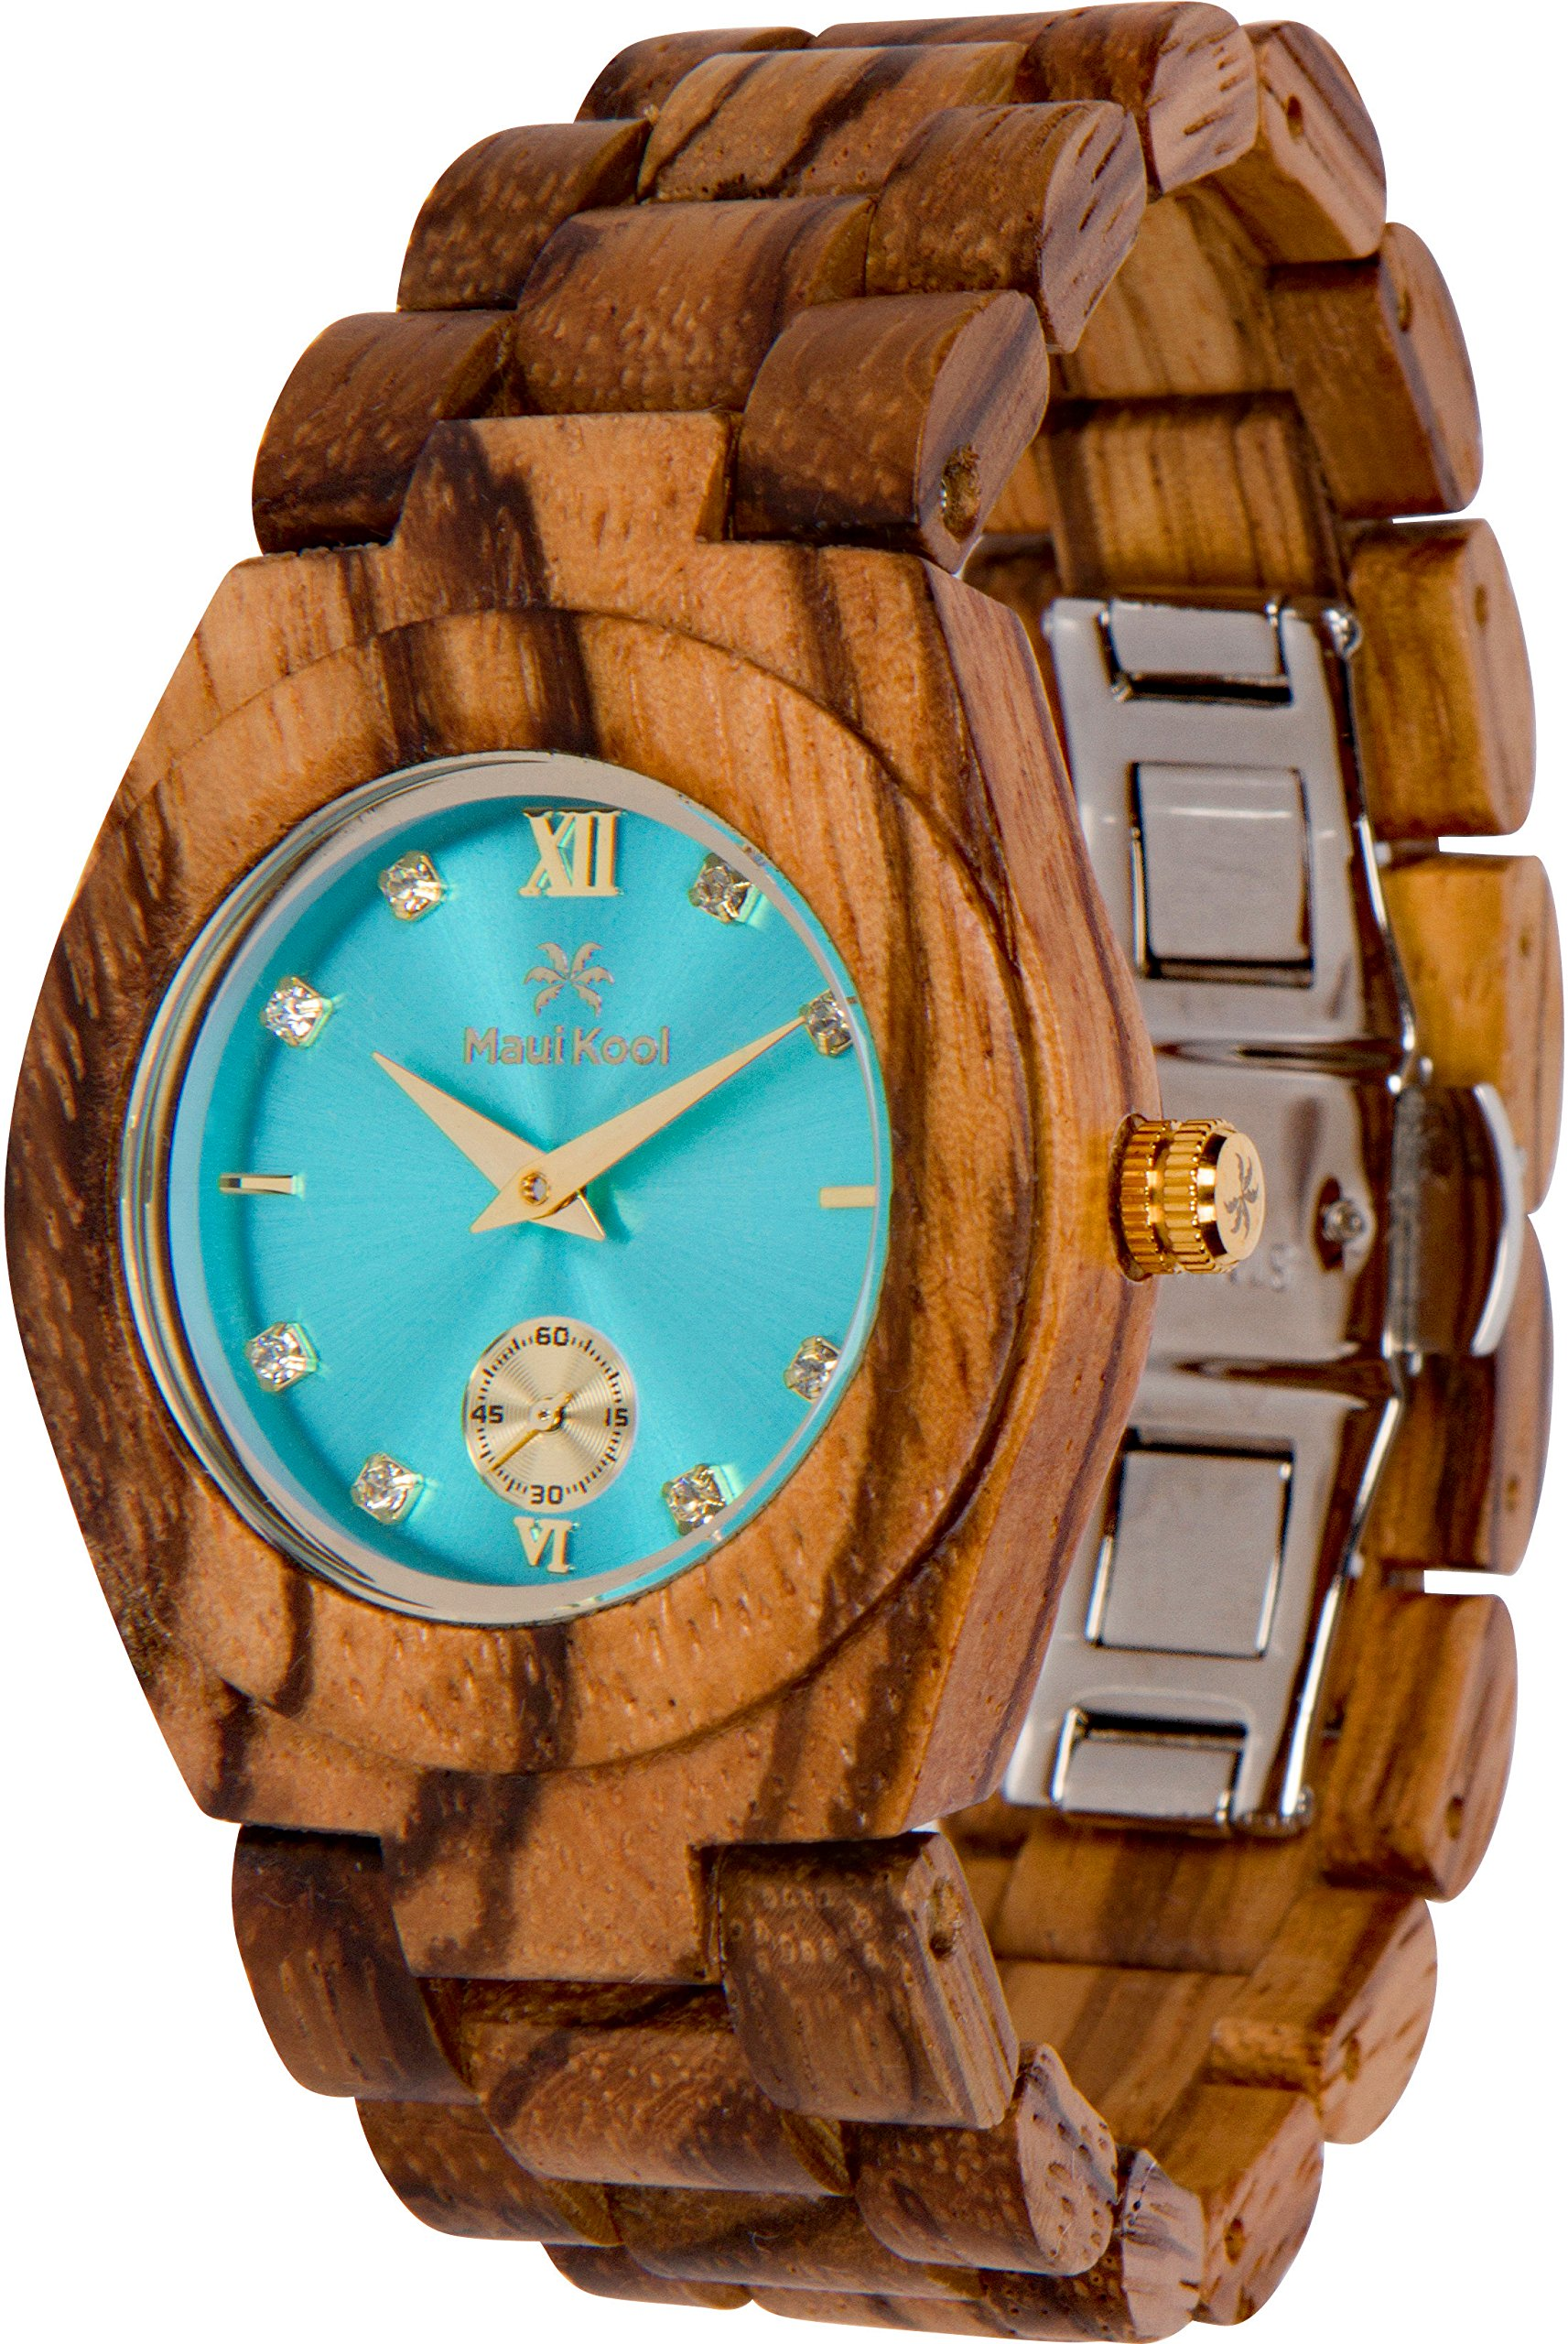 Maui Kool Wooden Watch Hana Collection for Women Analog Wood Watch Bamboo Gift Box (B1 - Zebra Turquoise)